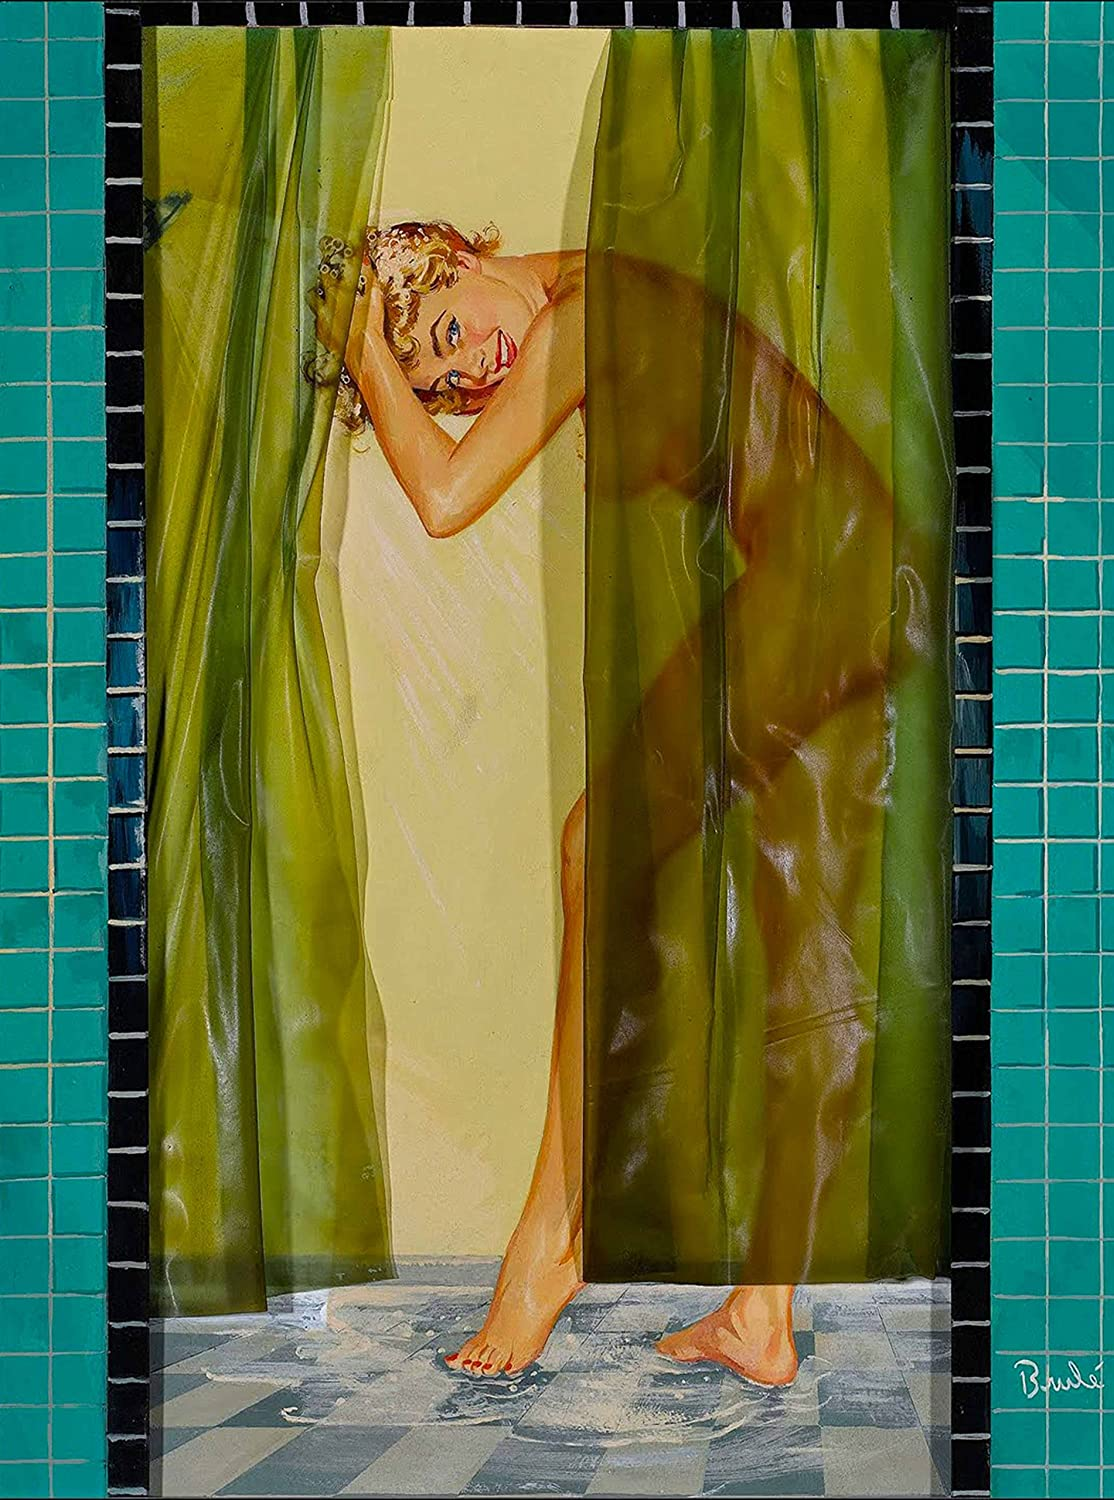 1940's Pin-Up Girl in The Shower Vintage Home Pin Up Collectible Wall Decor Art Poster Picture Print. Measures 10 x 13.5 inches